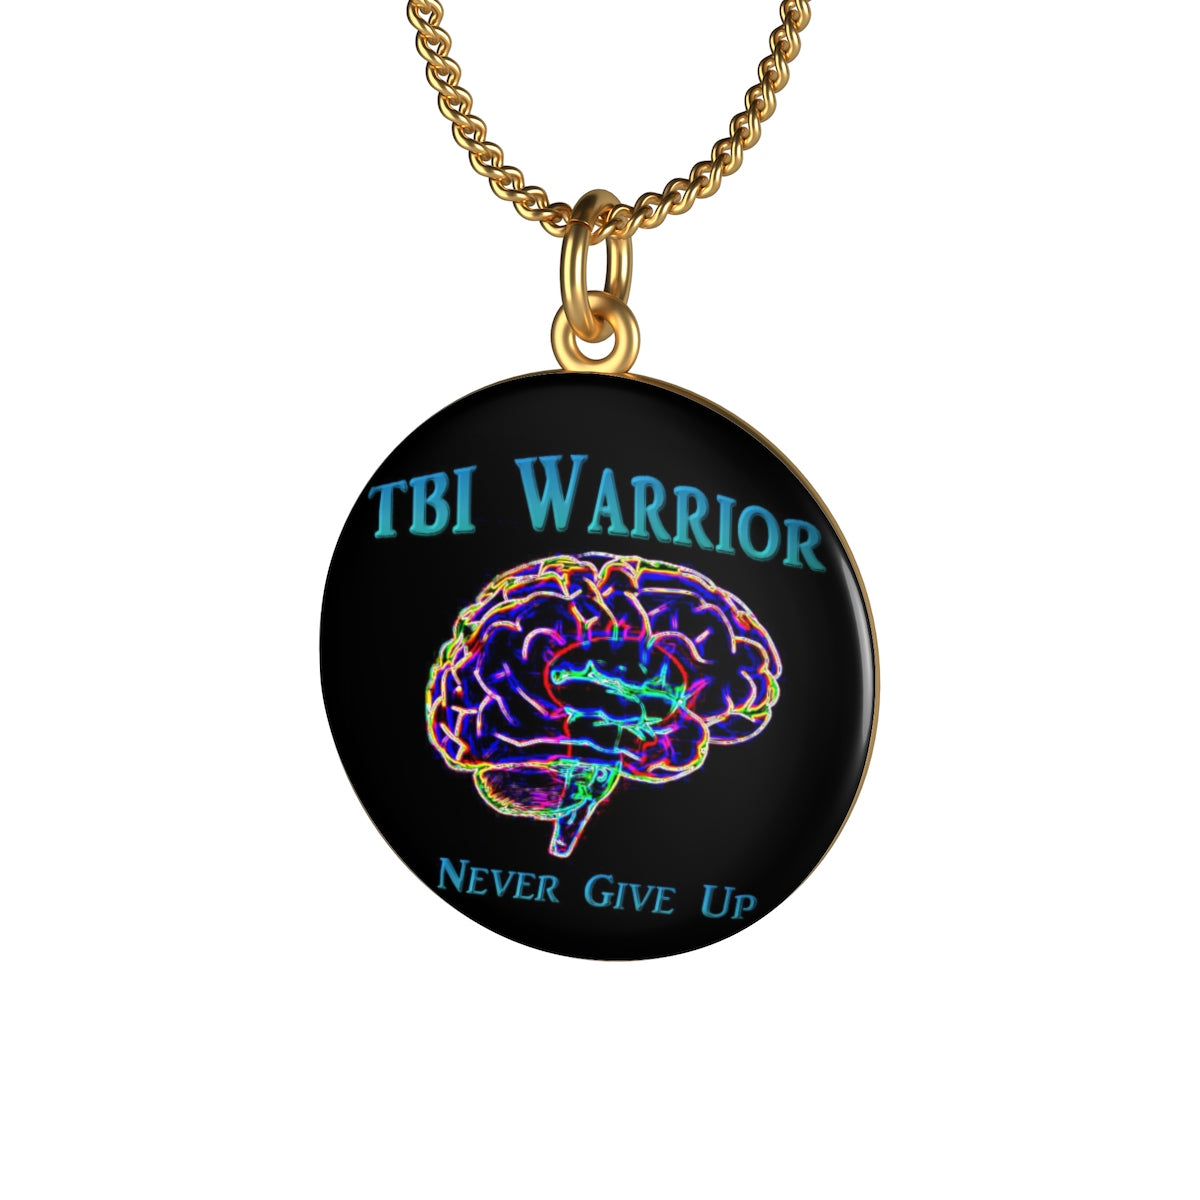 TBI Warrior Single Loop Necklace